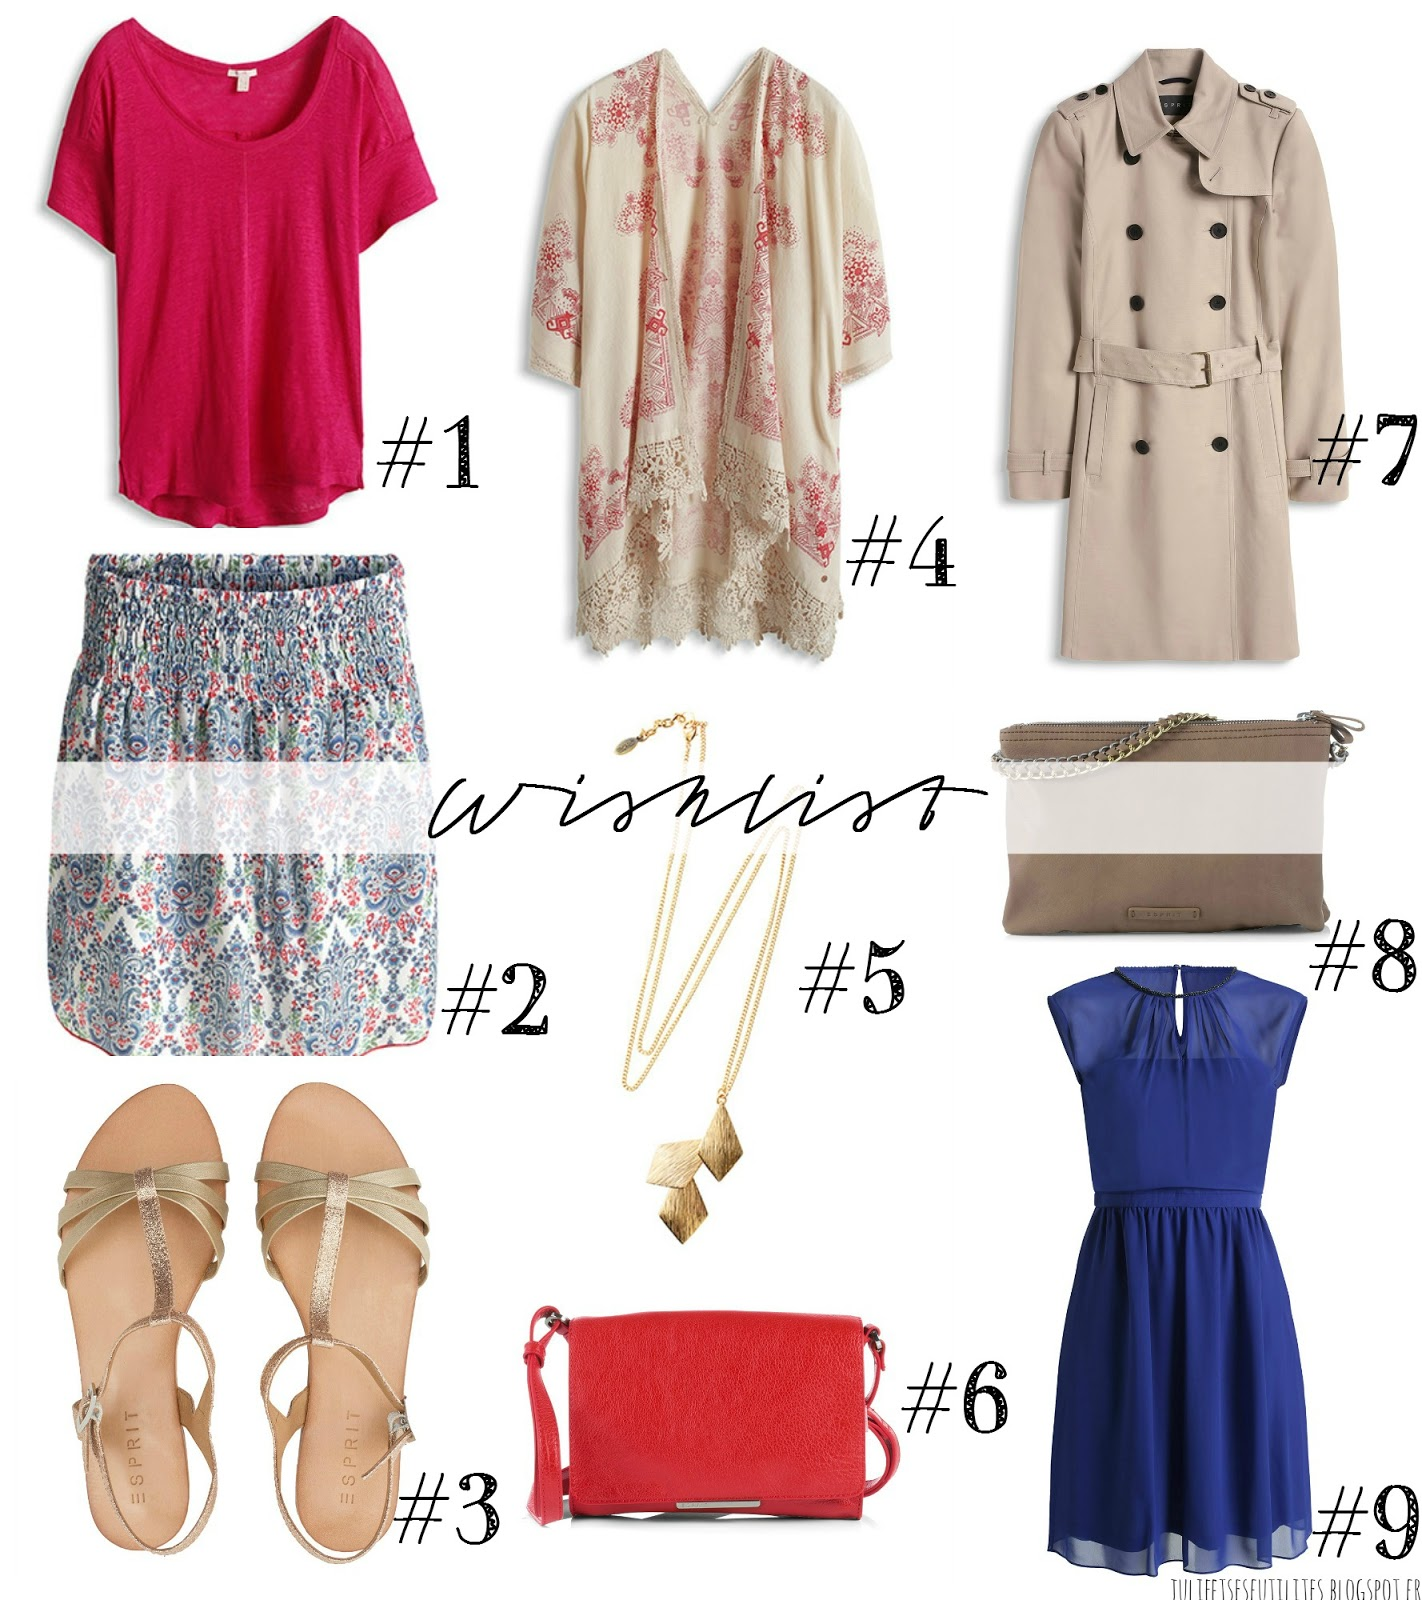 wishlist mode Esprit printemps-été 2015 julieetsesfutilites.blogspot.fr